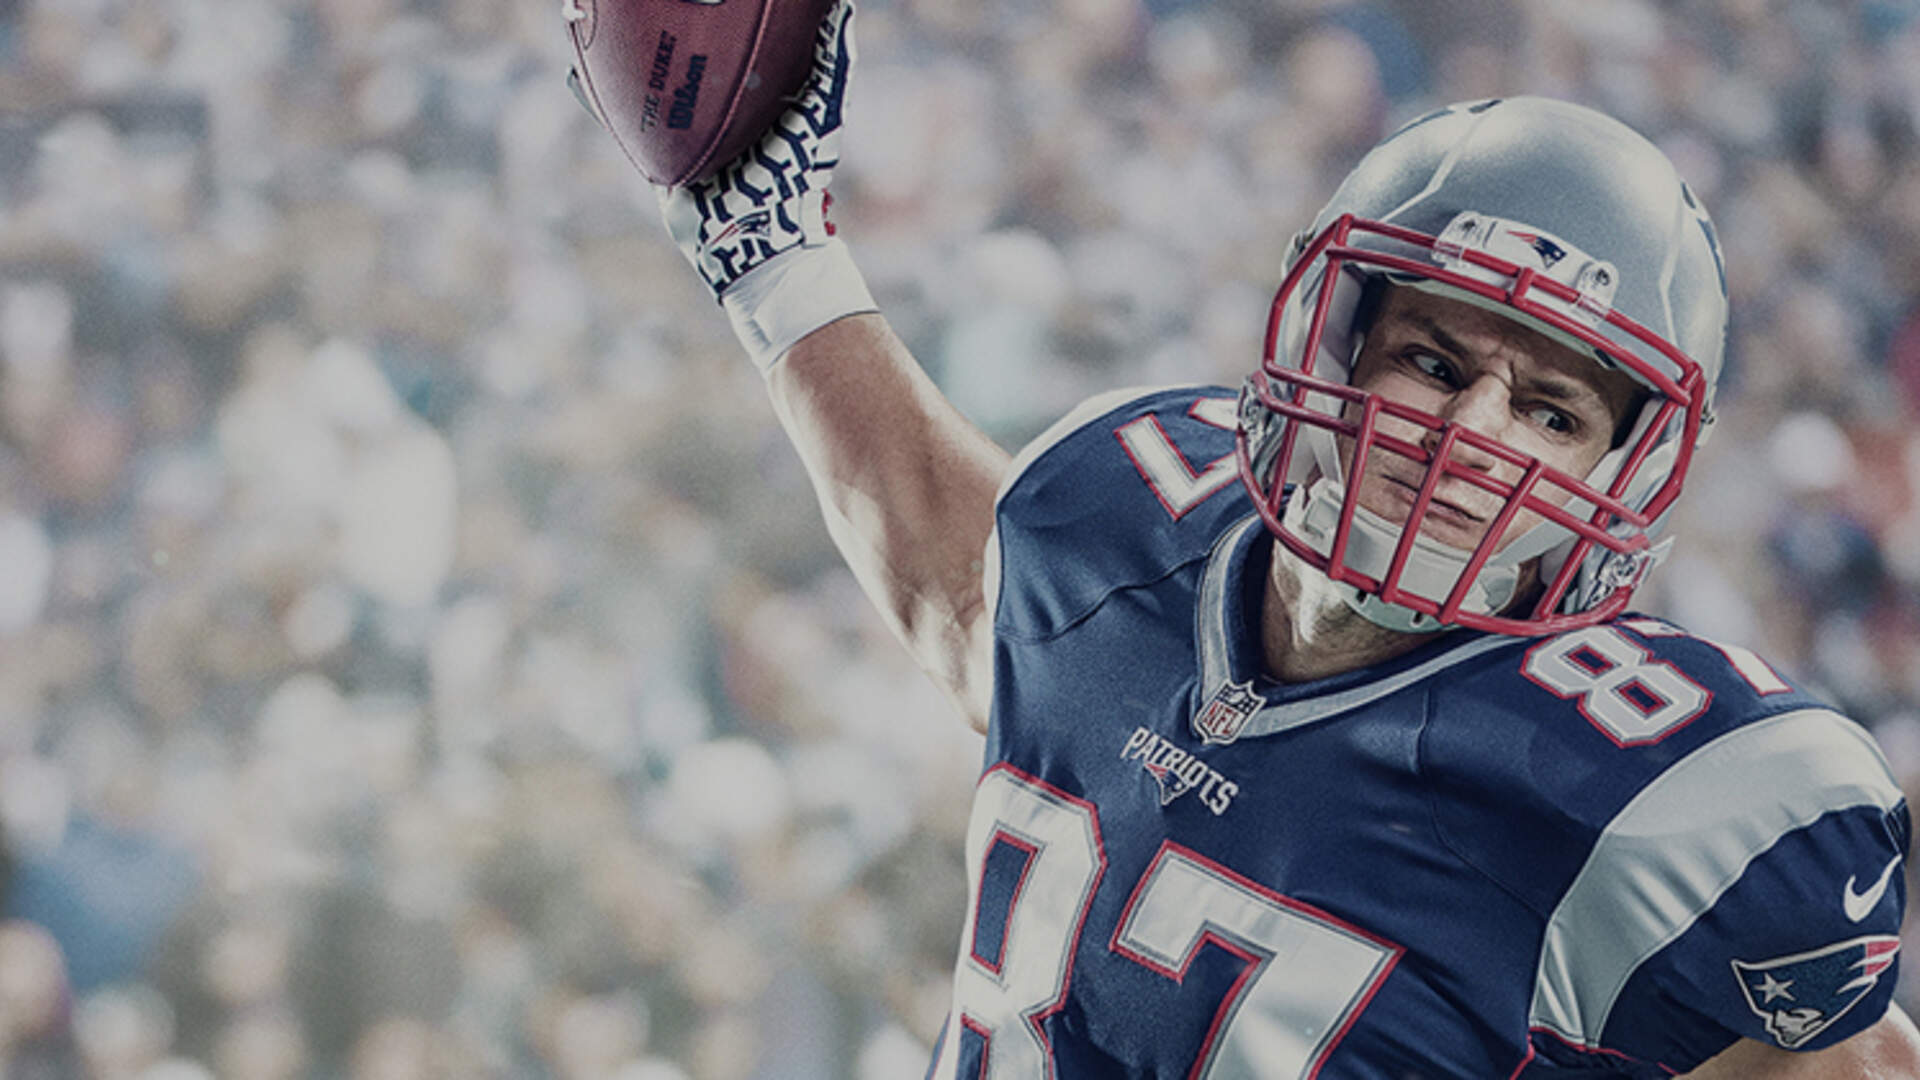 Madden 18 Moving to Frostbite, FIFA 18 Getting The Journey Season 2